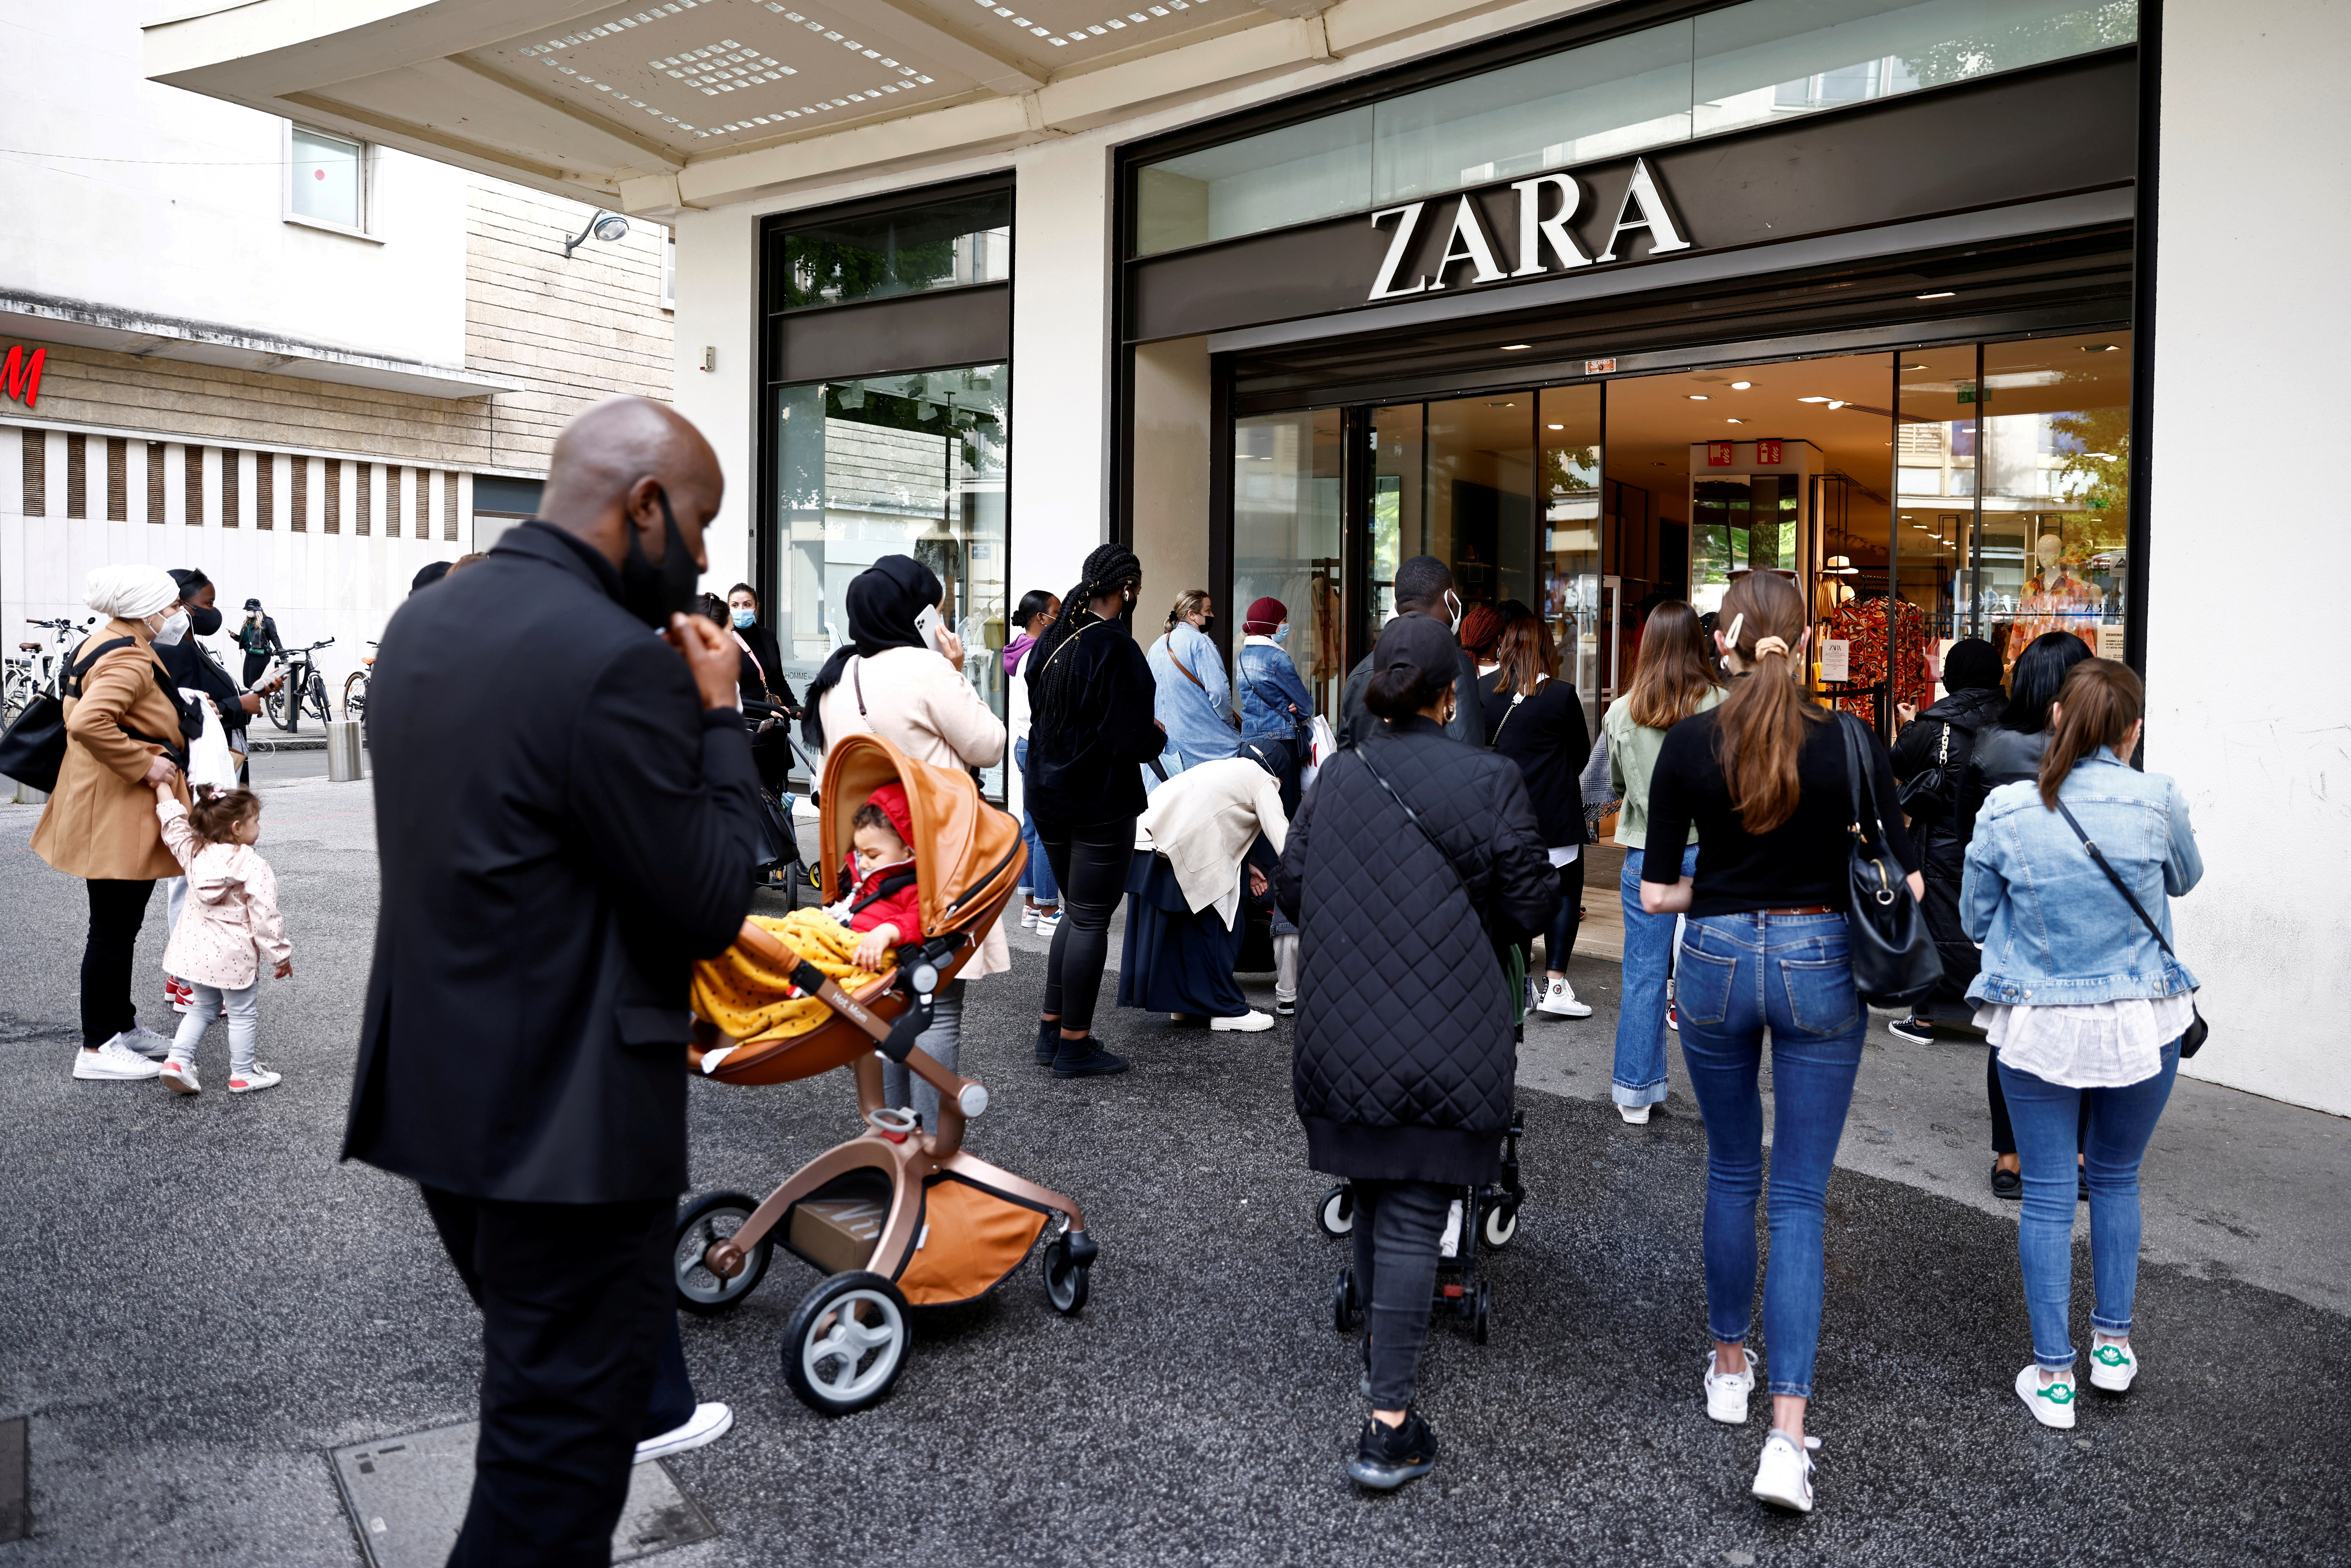 Customers enter a Zara shop in Nantes as non-essential business re-open after closing down for months, amid the coronavirus disease (COVID-19) outbreak in France, May 19, 2021. REUTERS/Stephane Mahe/File Photo